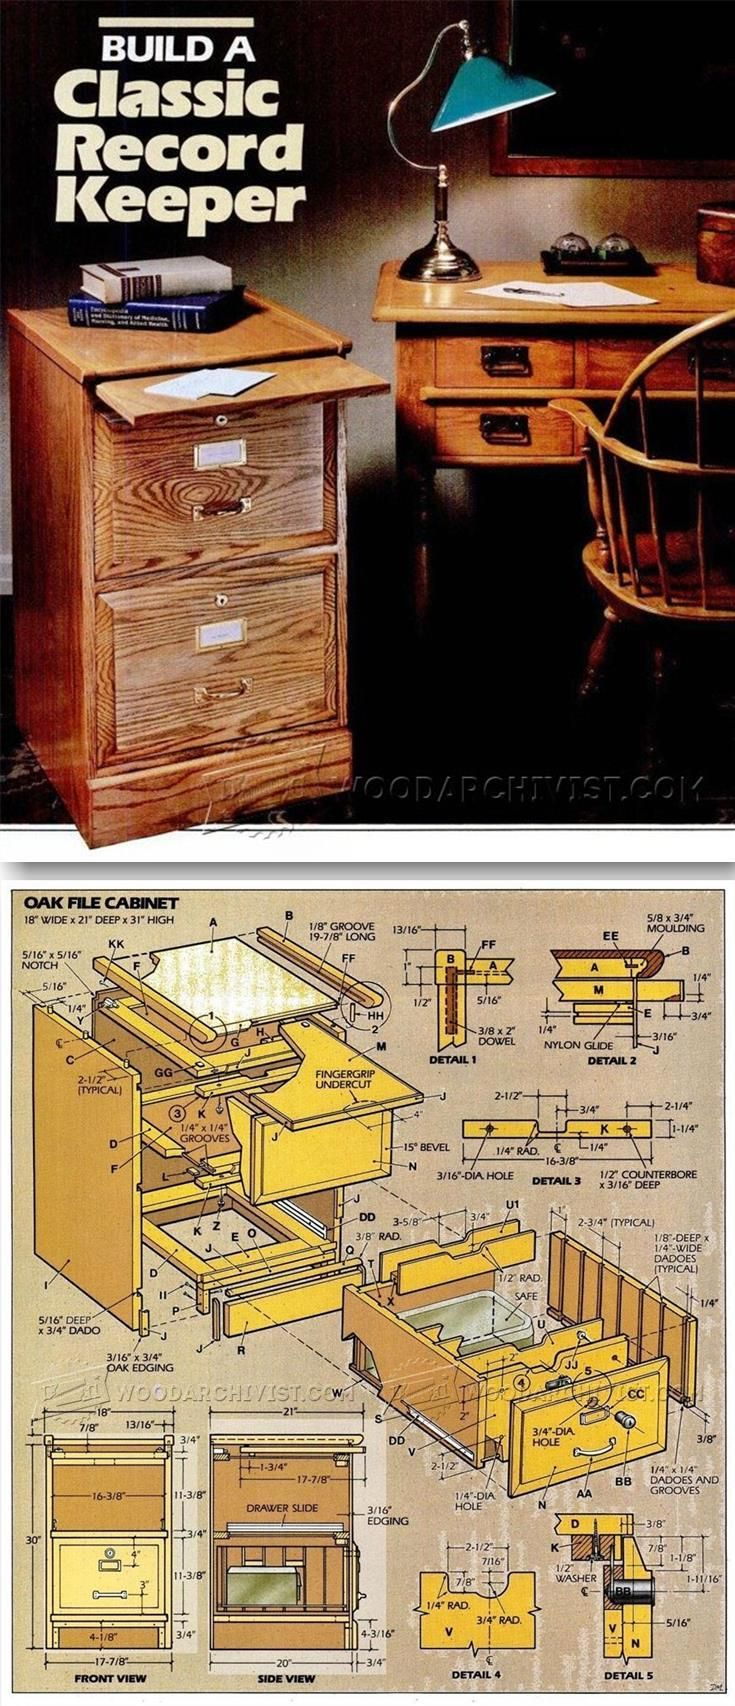 File Cabinet Plans - Furniture Plans and Projects | WoodArchivist ...